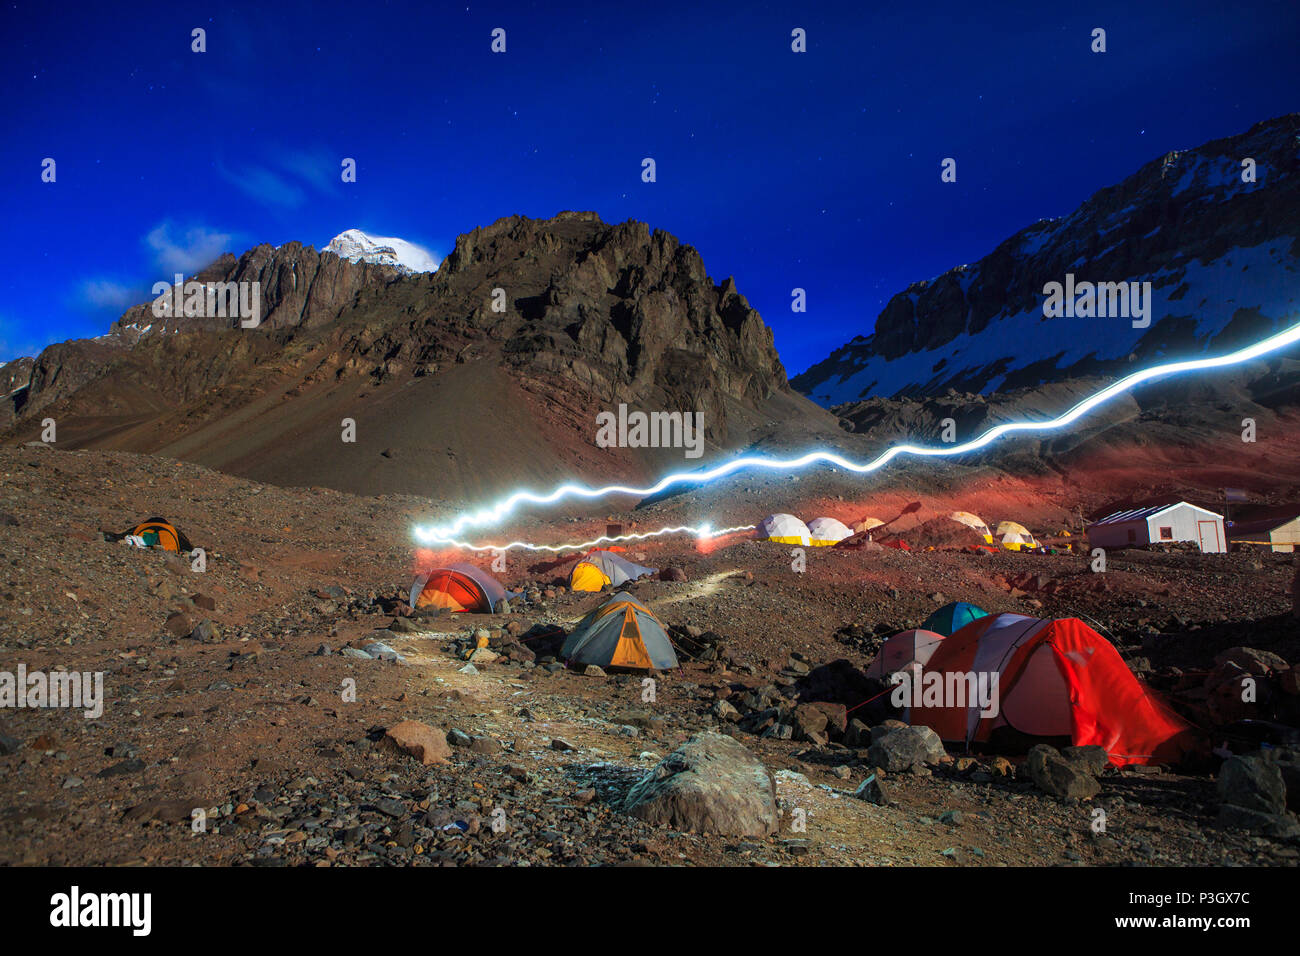 Base camp tents at Plaza de Argentina beneath Aconcagua, Mendoza, Argentina - Stock Image